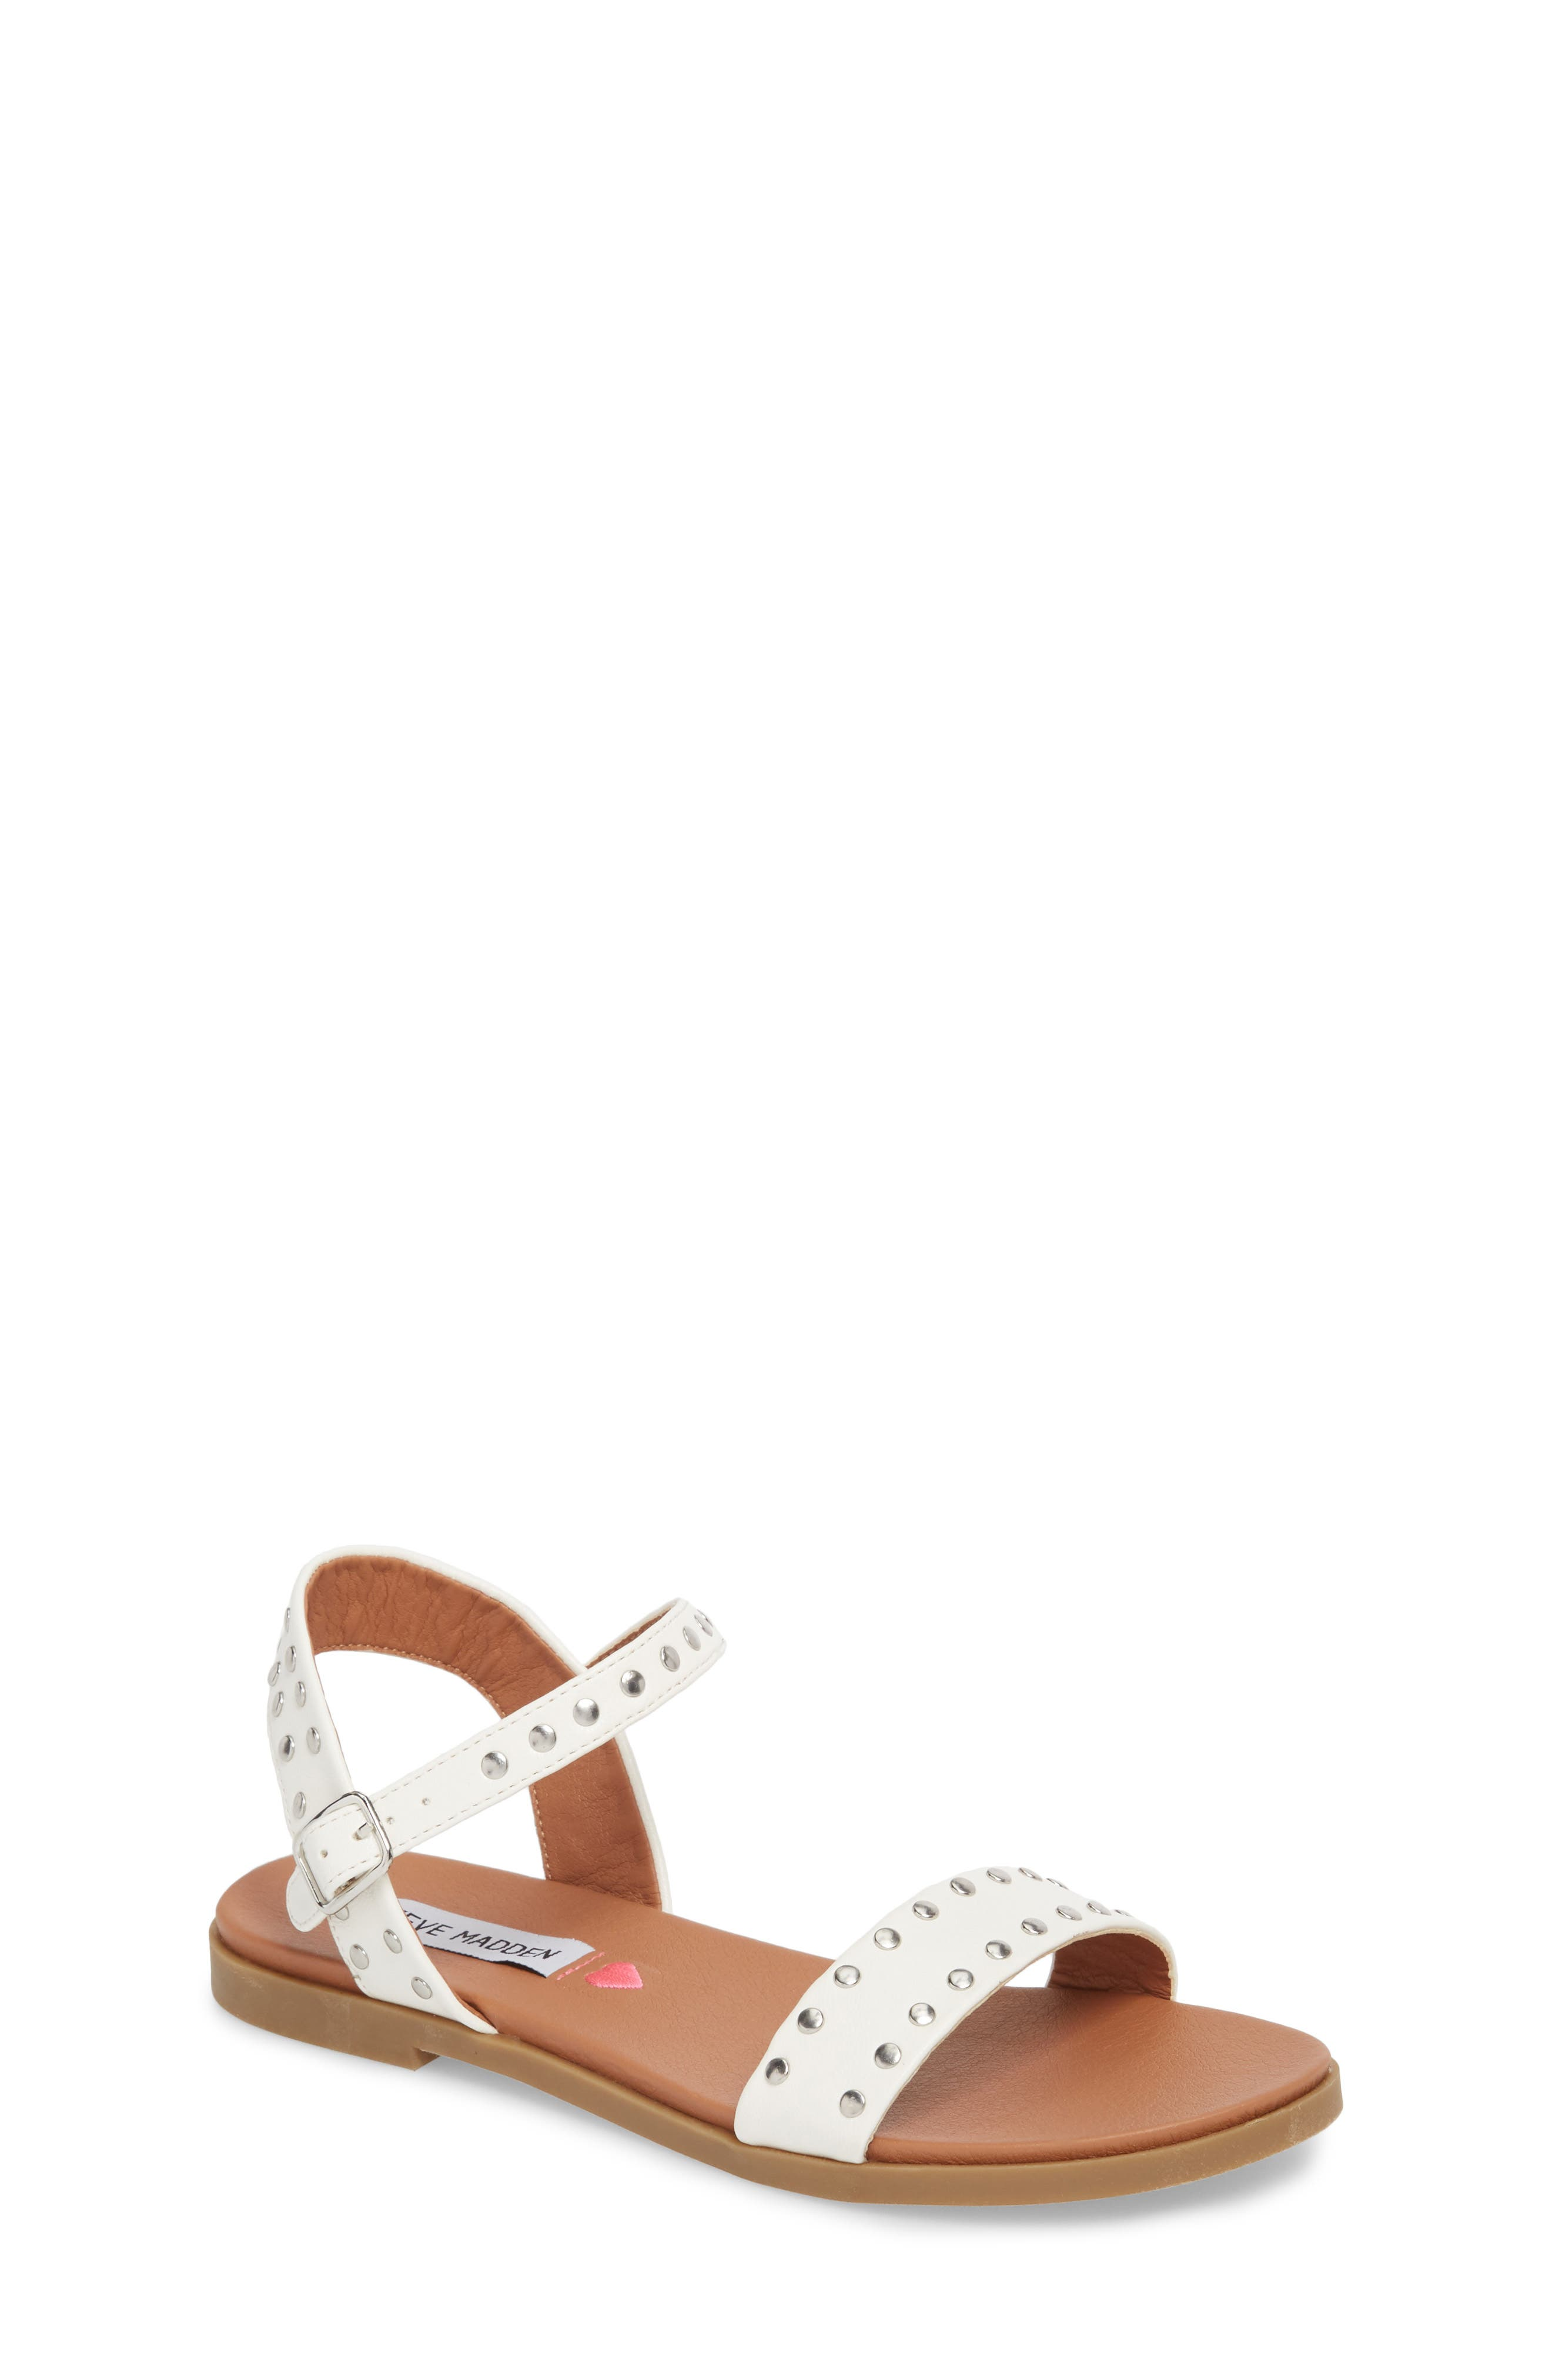 JDONDI Studded Sandal,                         Main,                         color, WHITE